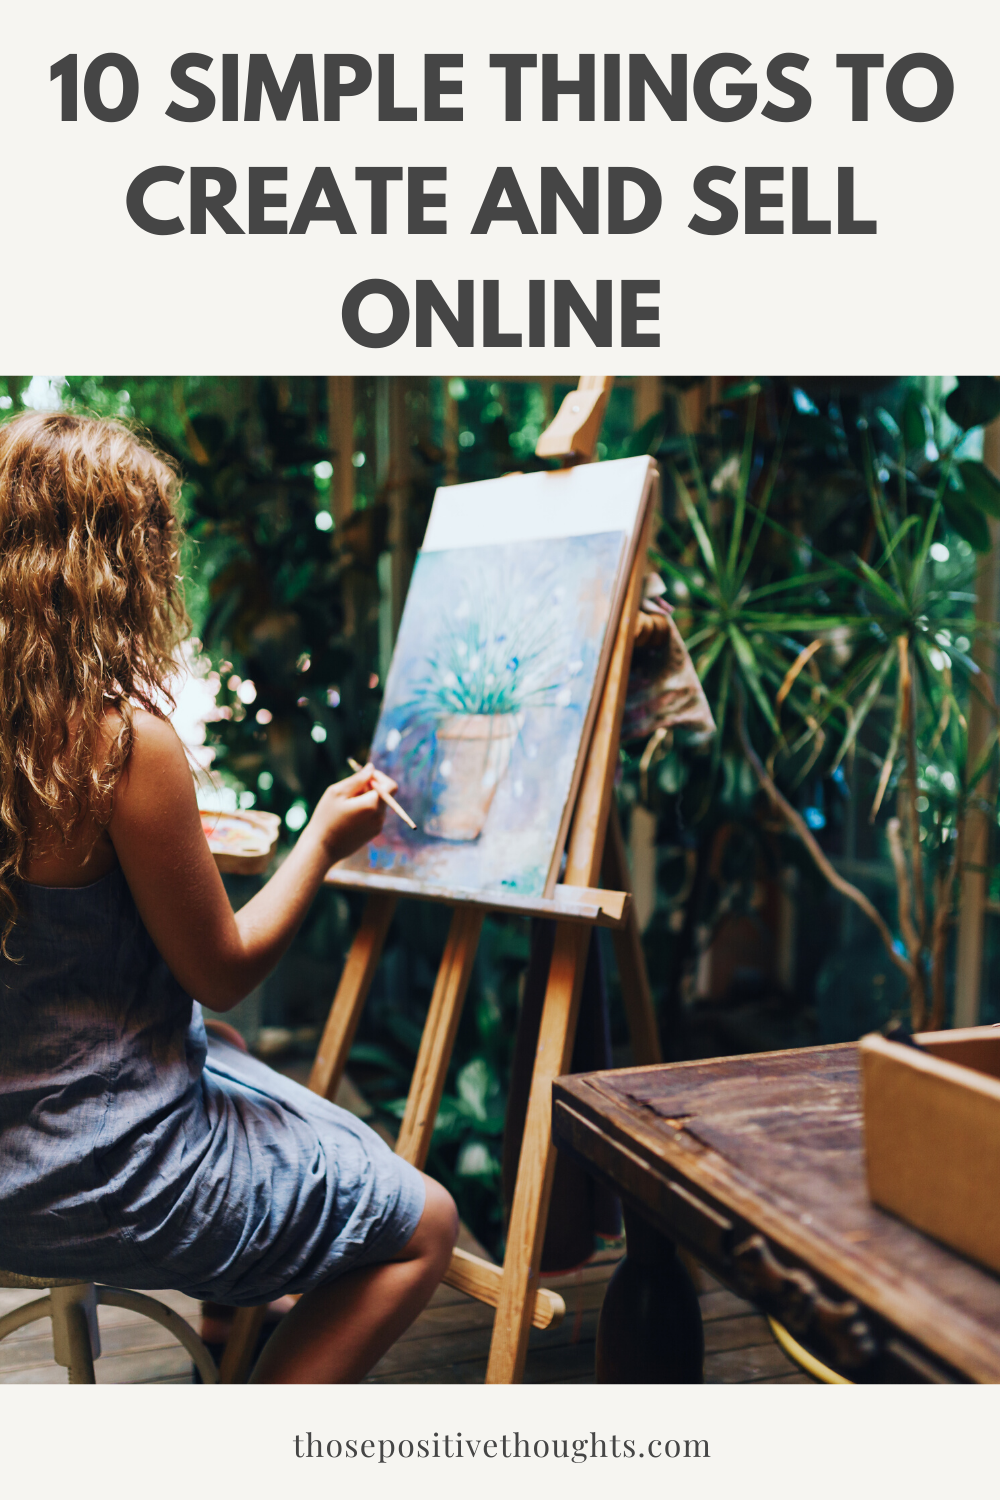 10 simple things to create and sell online